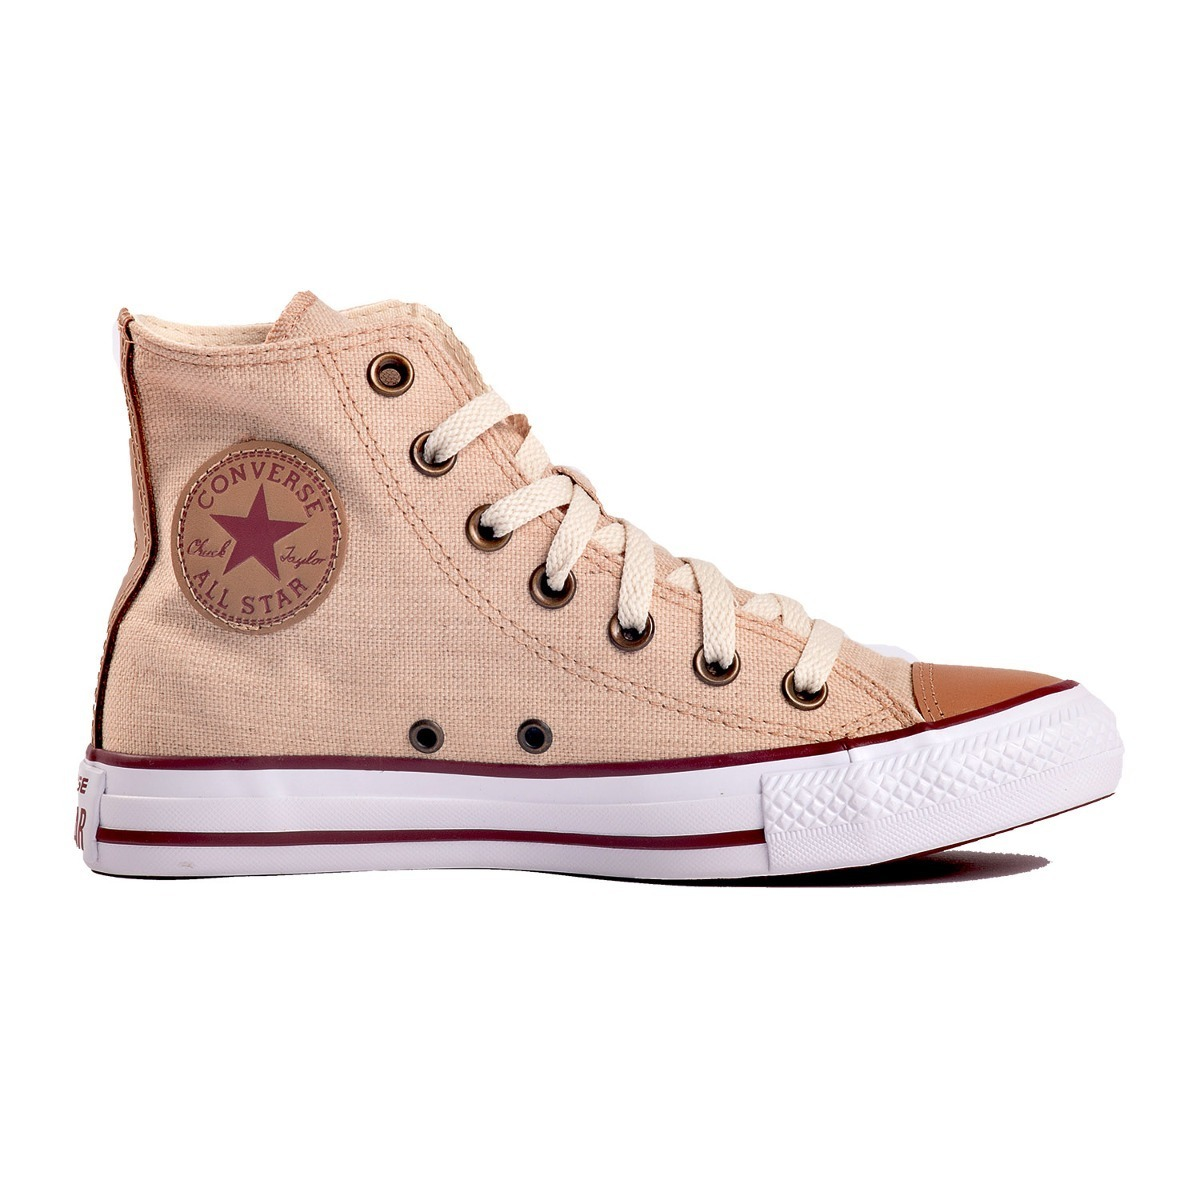 Zapatilla Converse All Star Bota Lino Original 157074c 34 41 ... 72801bad01e0f